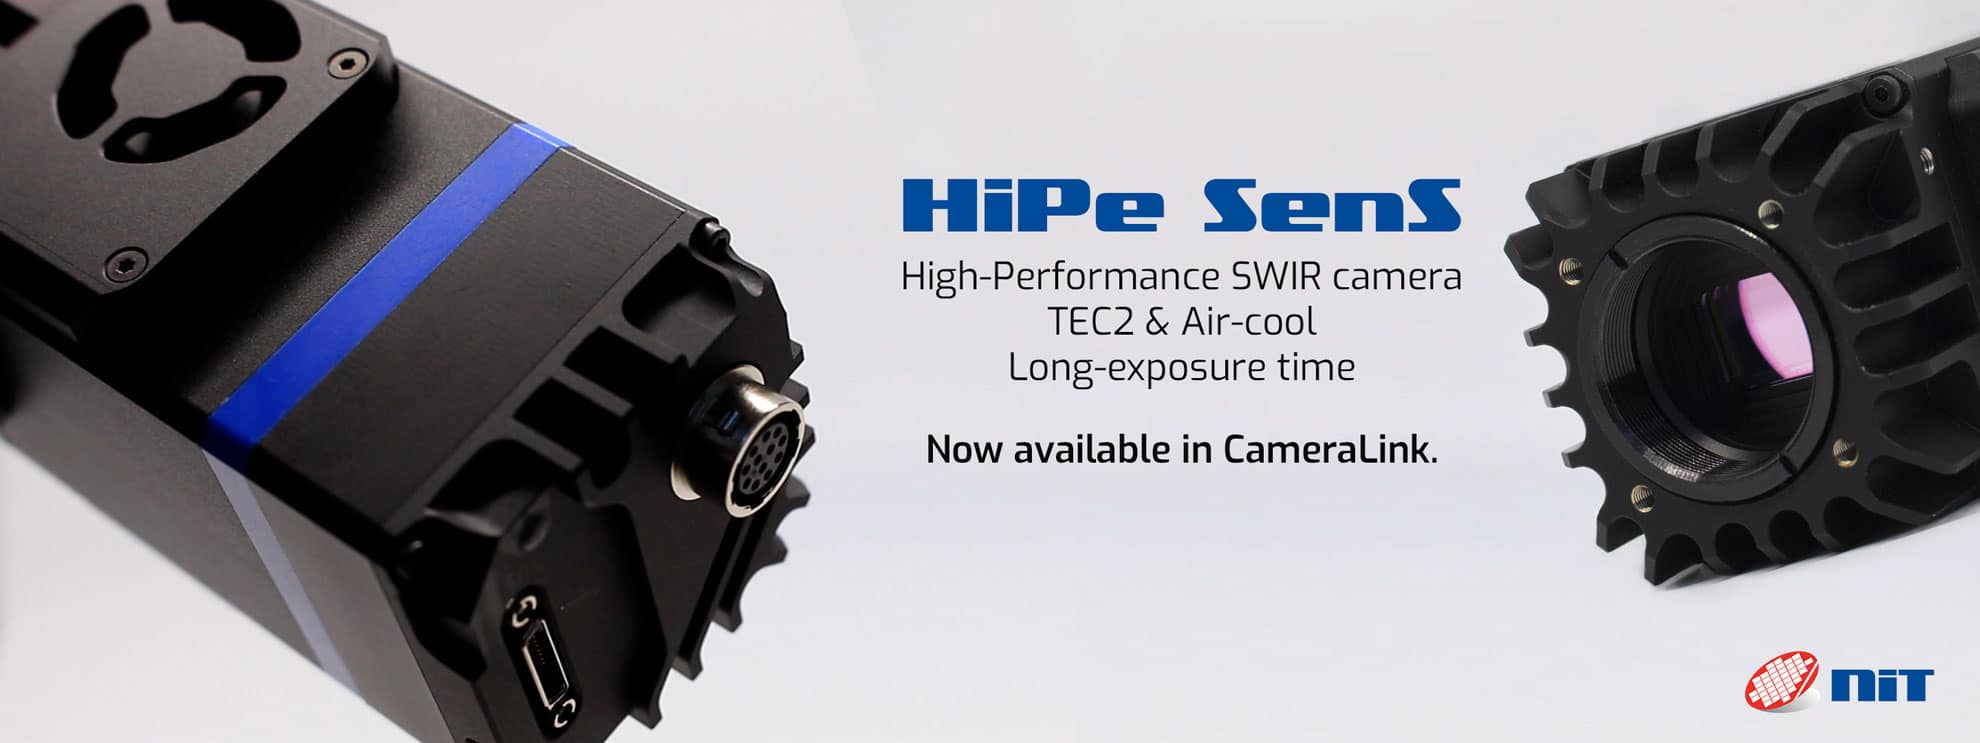 HiPe SenS CameraLink now available